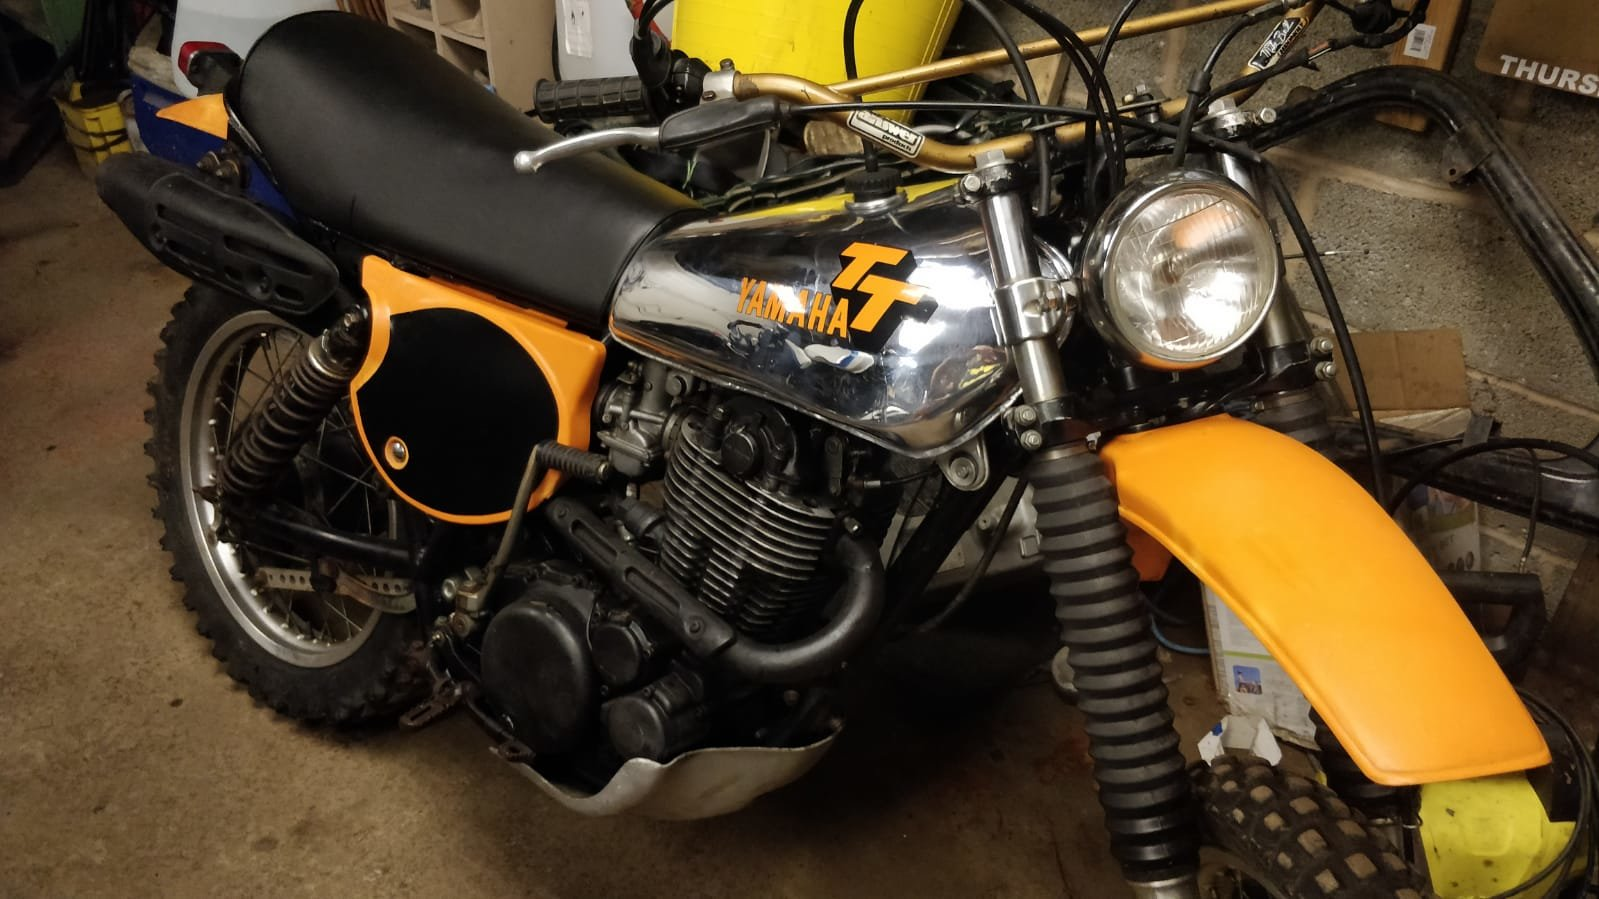 1977 Rare Yamaha TT500 (like XT500) with road lights For Sale (picture 6 of 6)